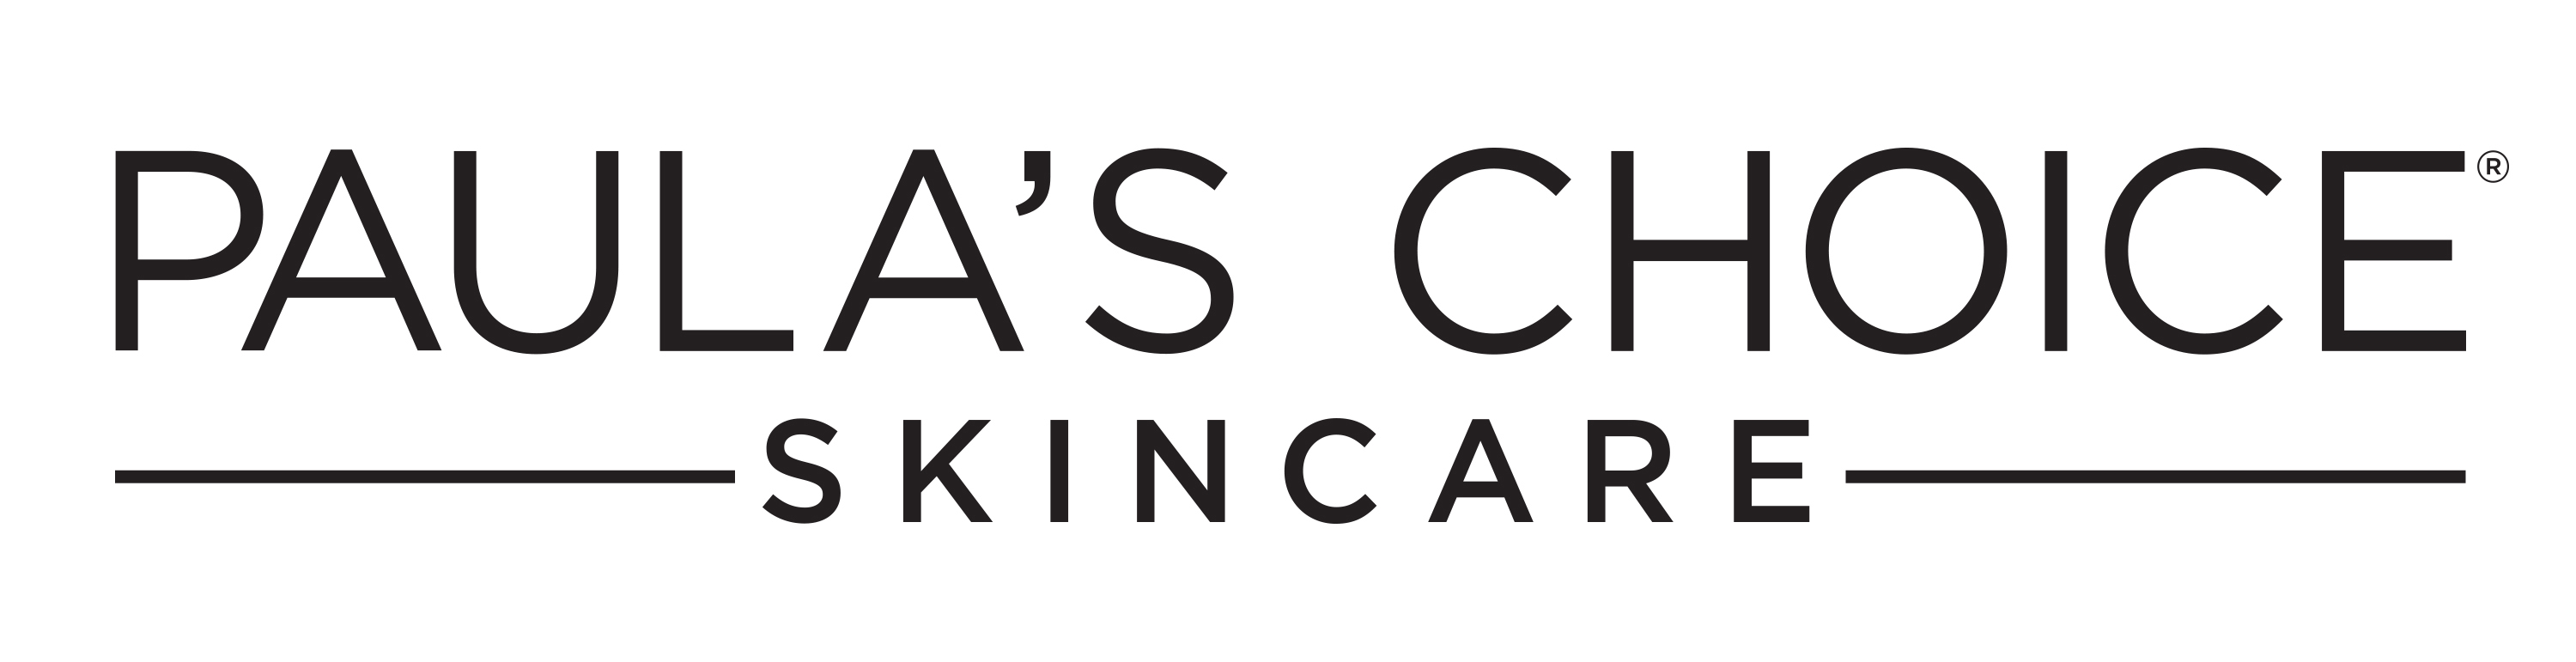 Logo Paula's Choice